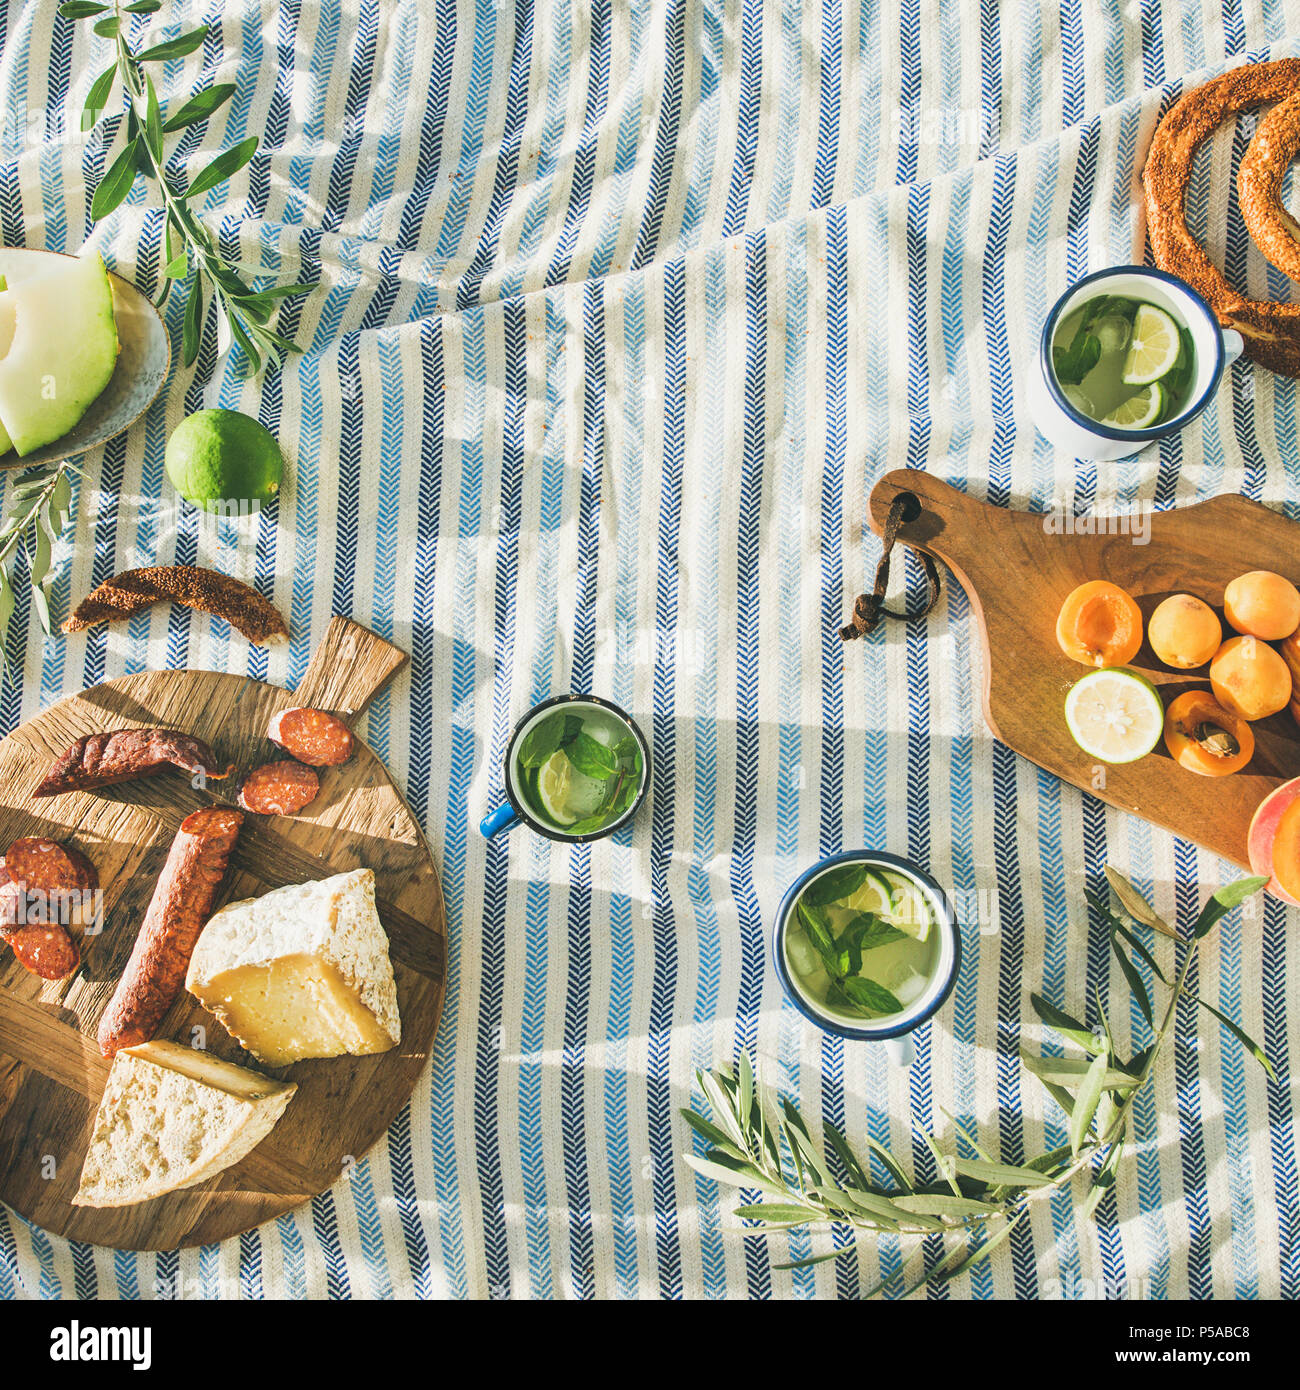 Summer picnic set - Stock Image